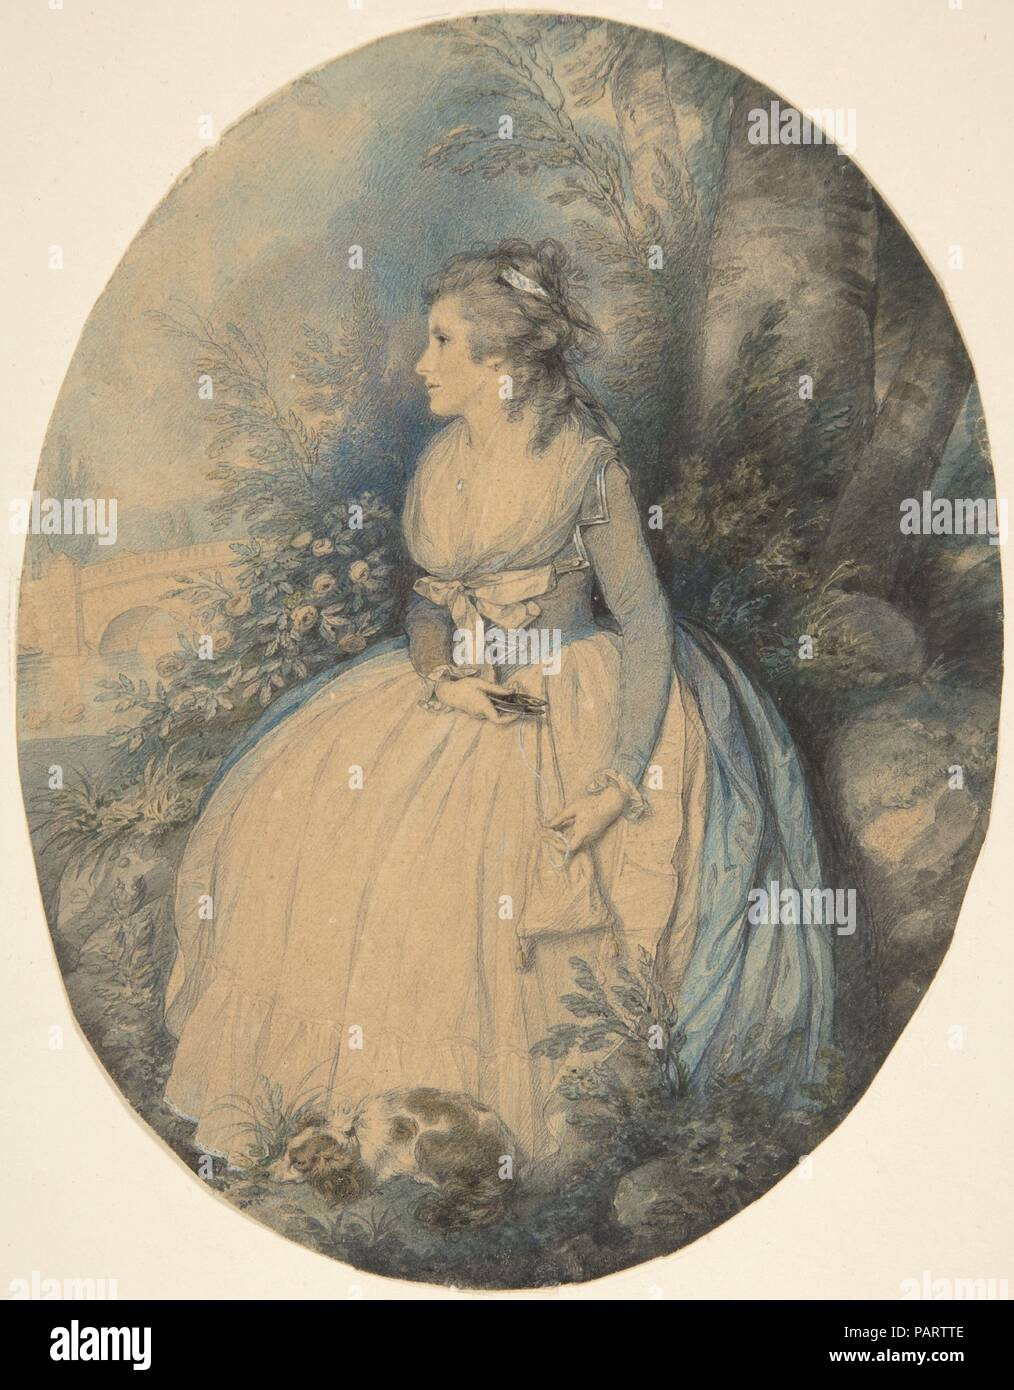 Mrs. Robinson as Perdita. Artist: Richard Cosway (British, Oakford, Devon 1742-1821 London). Dimensions: oval sheet: 7 13/16 x 6 in. (19.9 x 15.3 cm). Sitter: Mary 'Perdita' Robinson (British, 1758-1800). Subject: William Shakespeare (British, Stratford-upon-Avon 1564-1616 Stratford-upon-Avon). Date: ca. 1779.  This lovely young woman seated in a park, fingering a spindle wound with thread and accompanied by her dog, is Mary Robinson. When she performed the role of Perdita in an adaption of Shakespeare's 'Winter's Tale,' staged by David Garrick in 1779, George, Prince of Wales fell in love wit - Stock Image